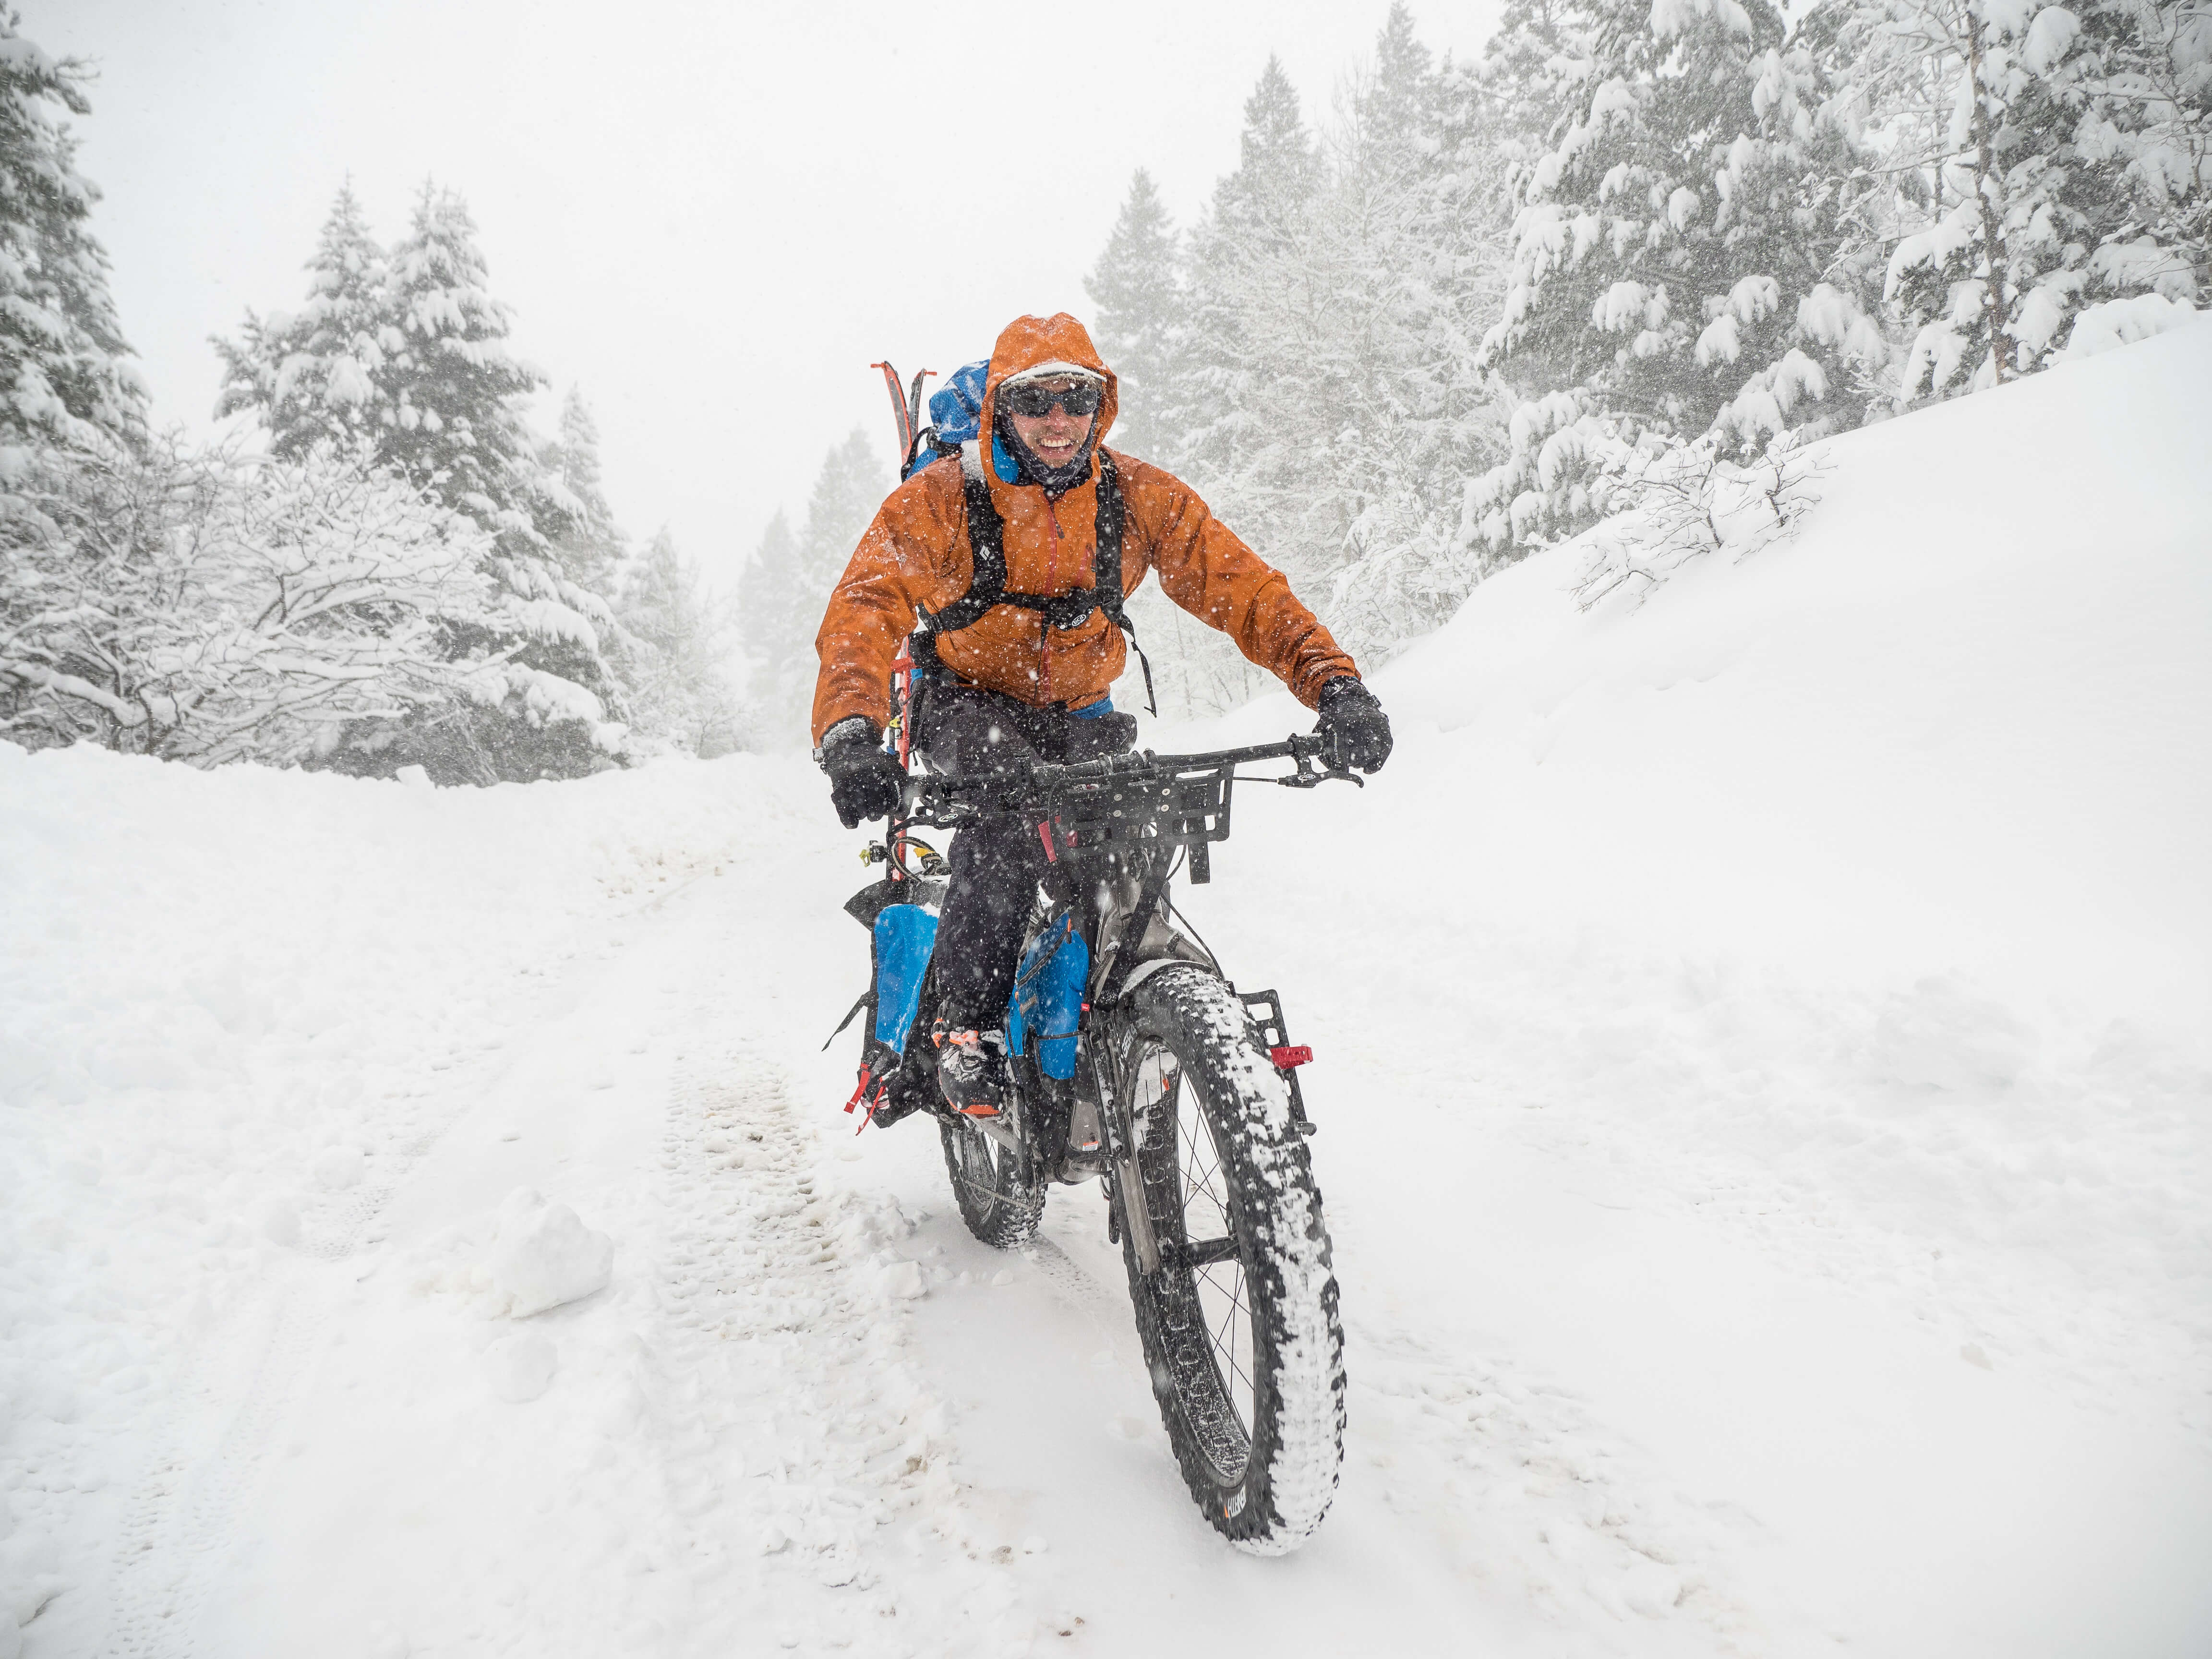 AJ grinning from ear to ear as we ride into the storm in search of powder.